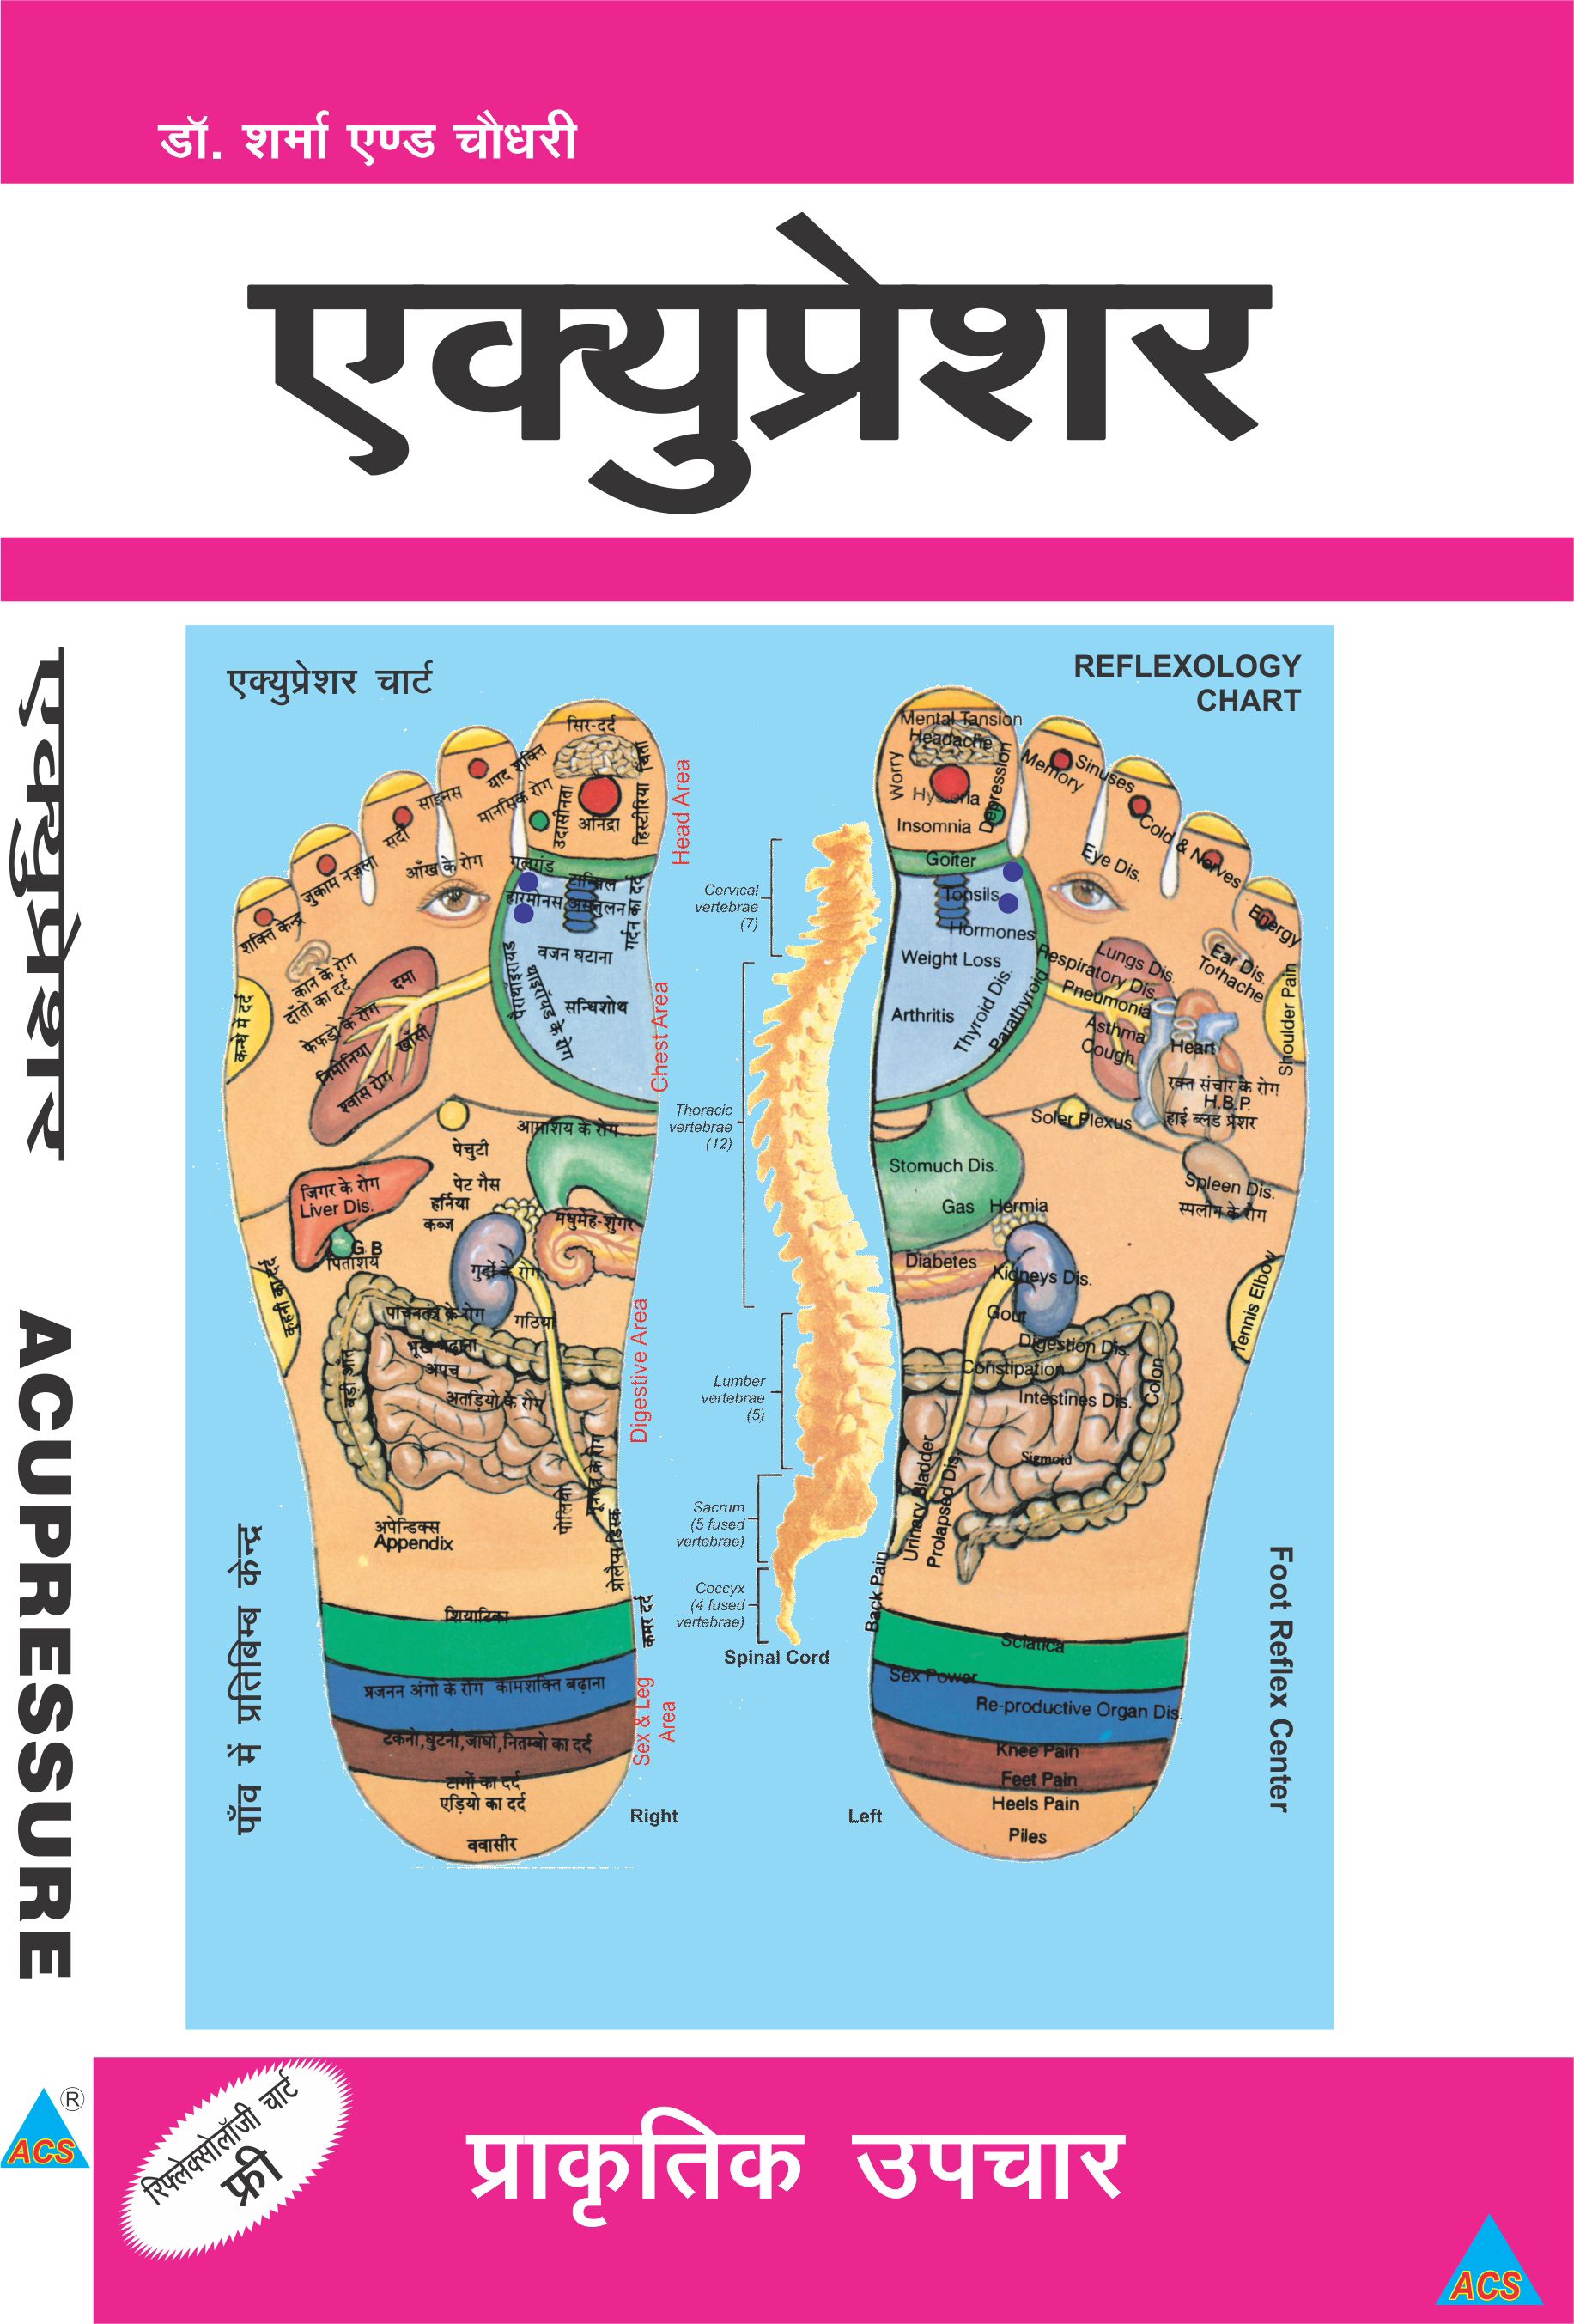 Acupressure - Dr. Sharma & Choudhary - Hindi  - 571